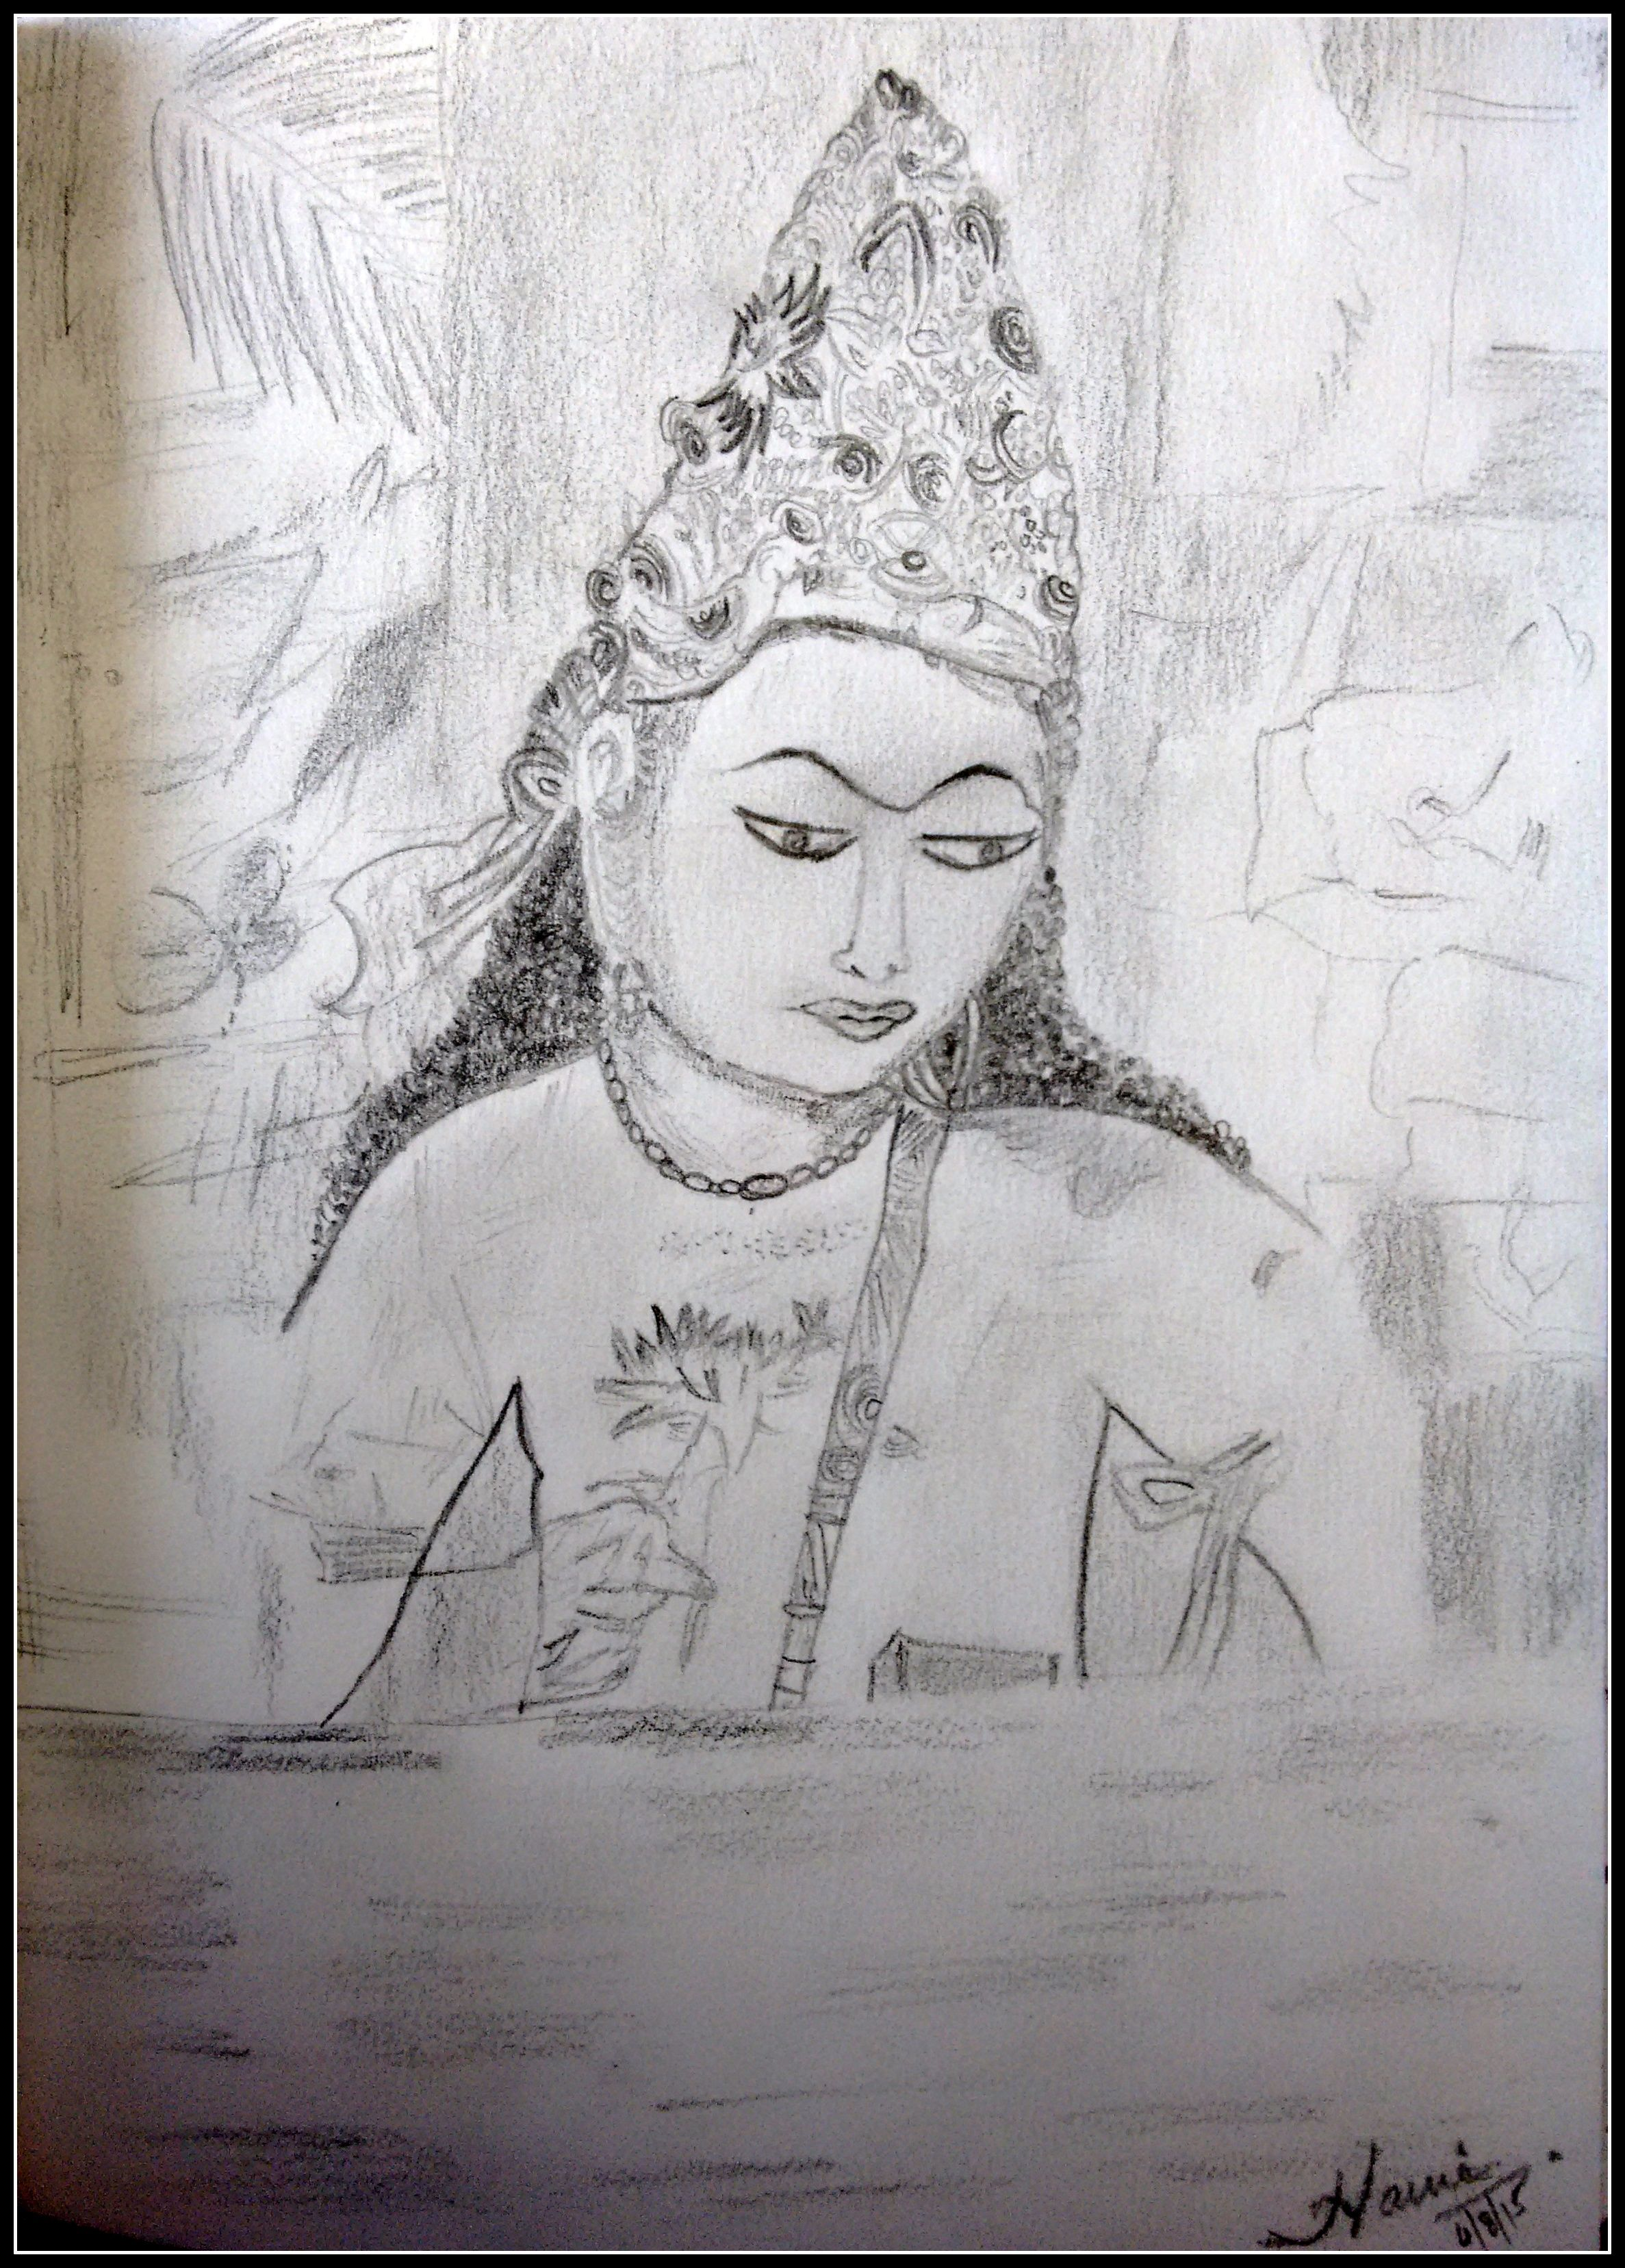 Ajanta image on paper with some pencil shading some hand shading and use of eraser